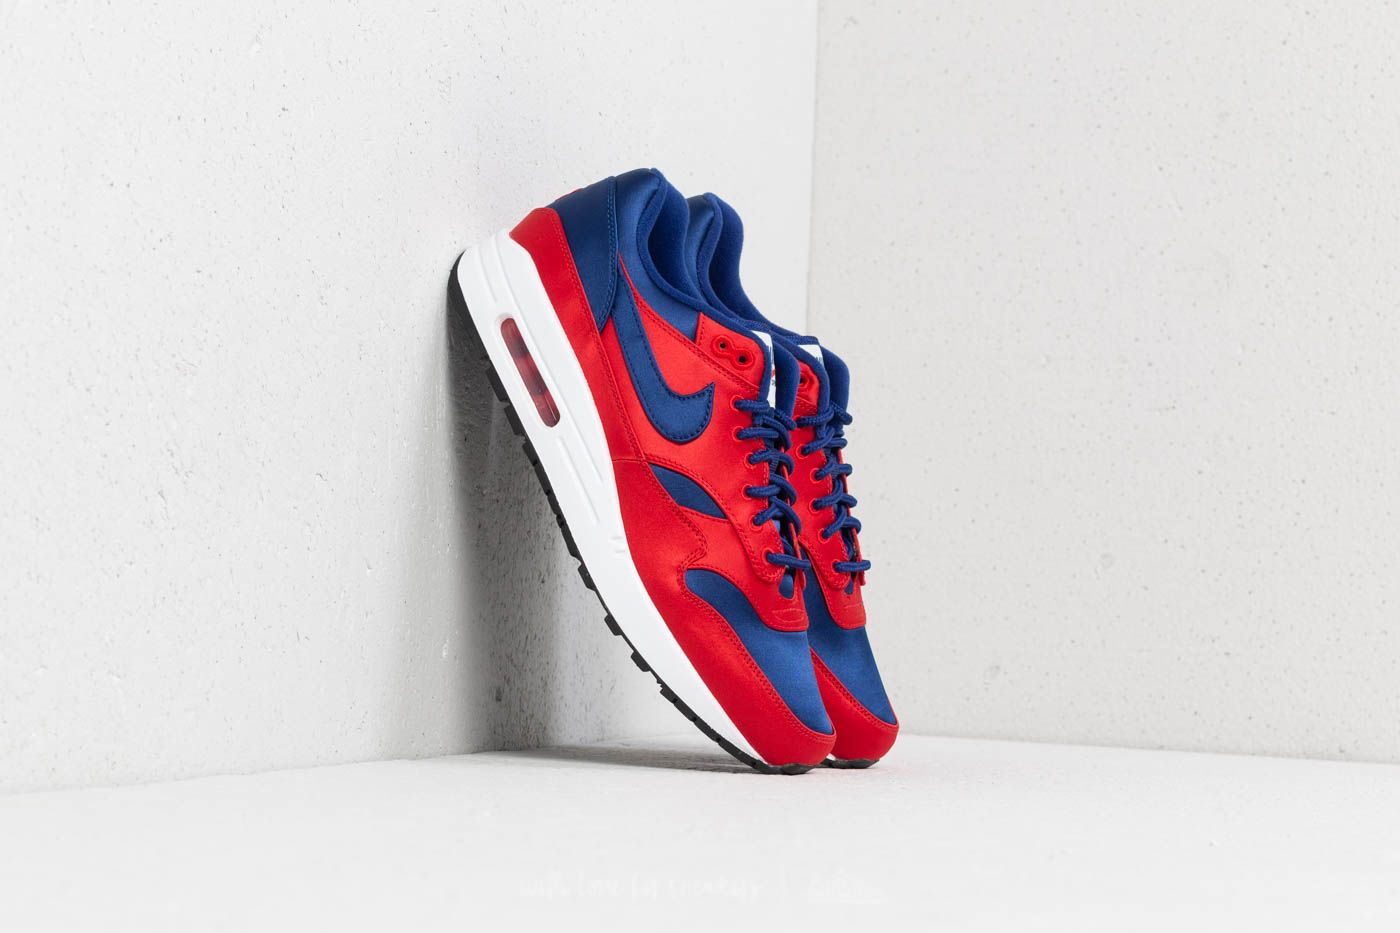 promo code faaad 9d2c5 Nike Air Max 1 SE University Red  Deep Royal Blue at a great price £